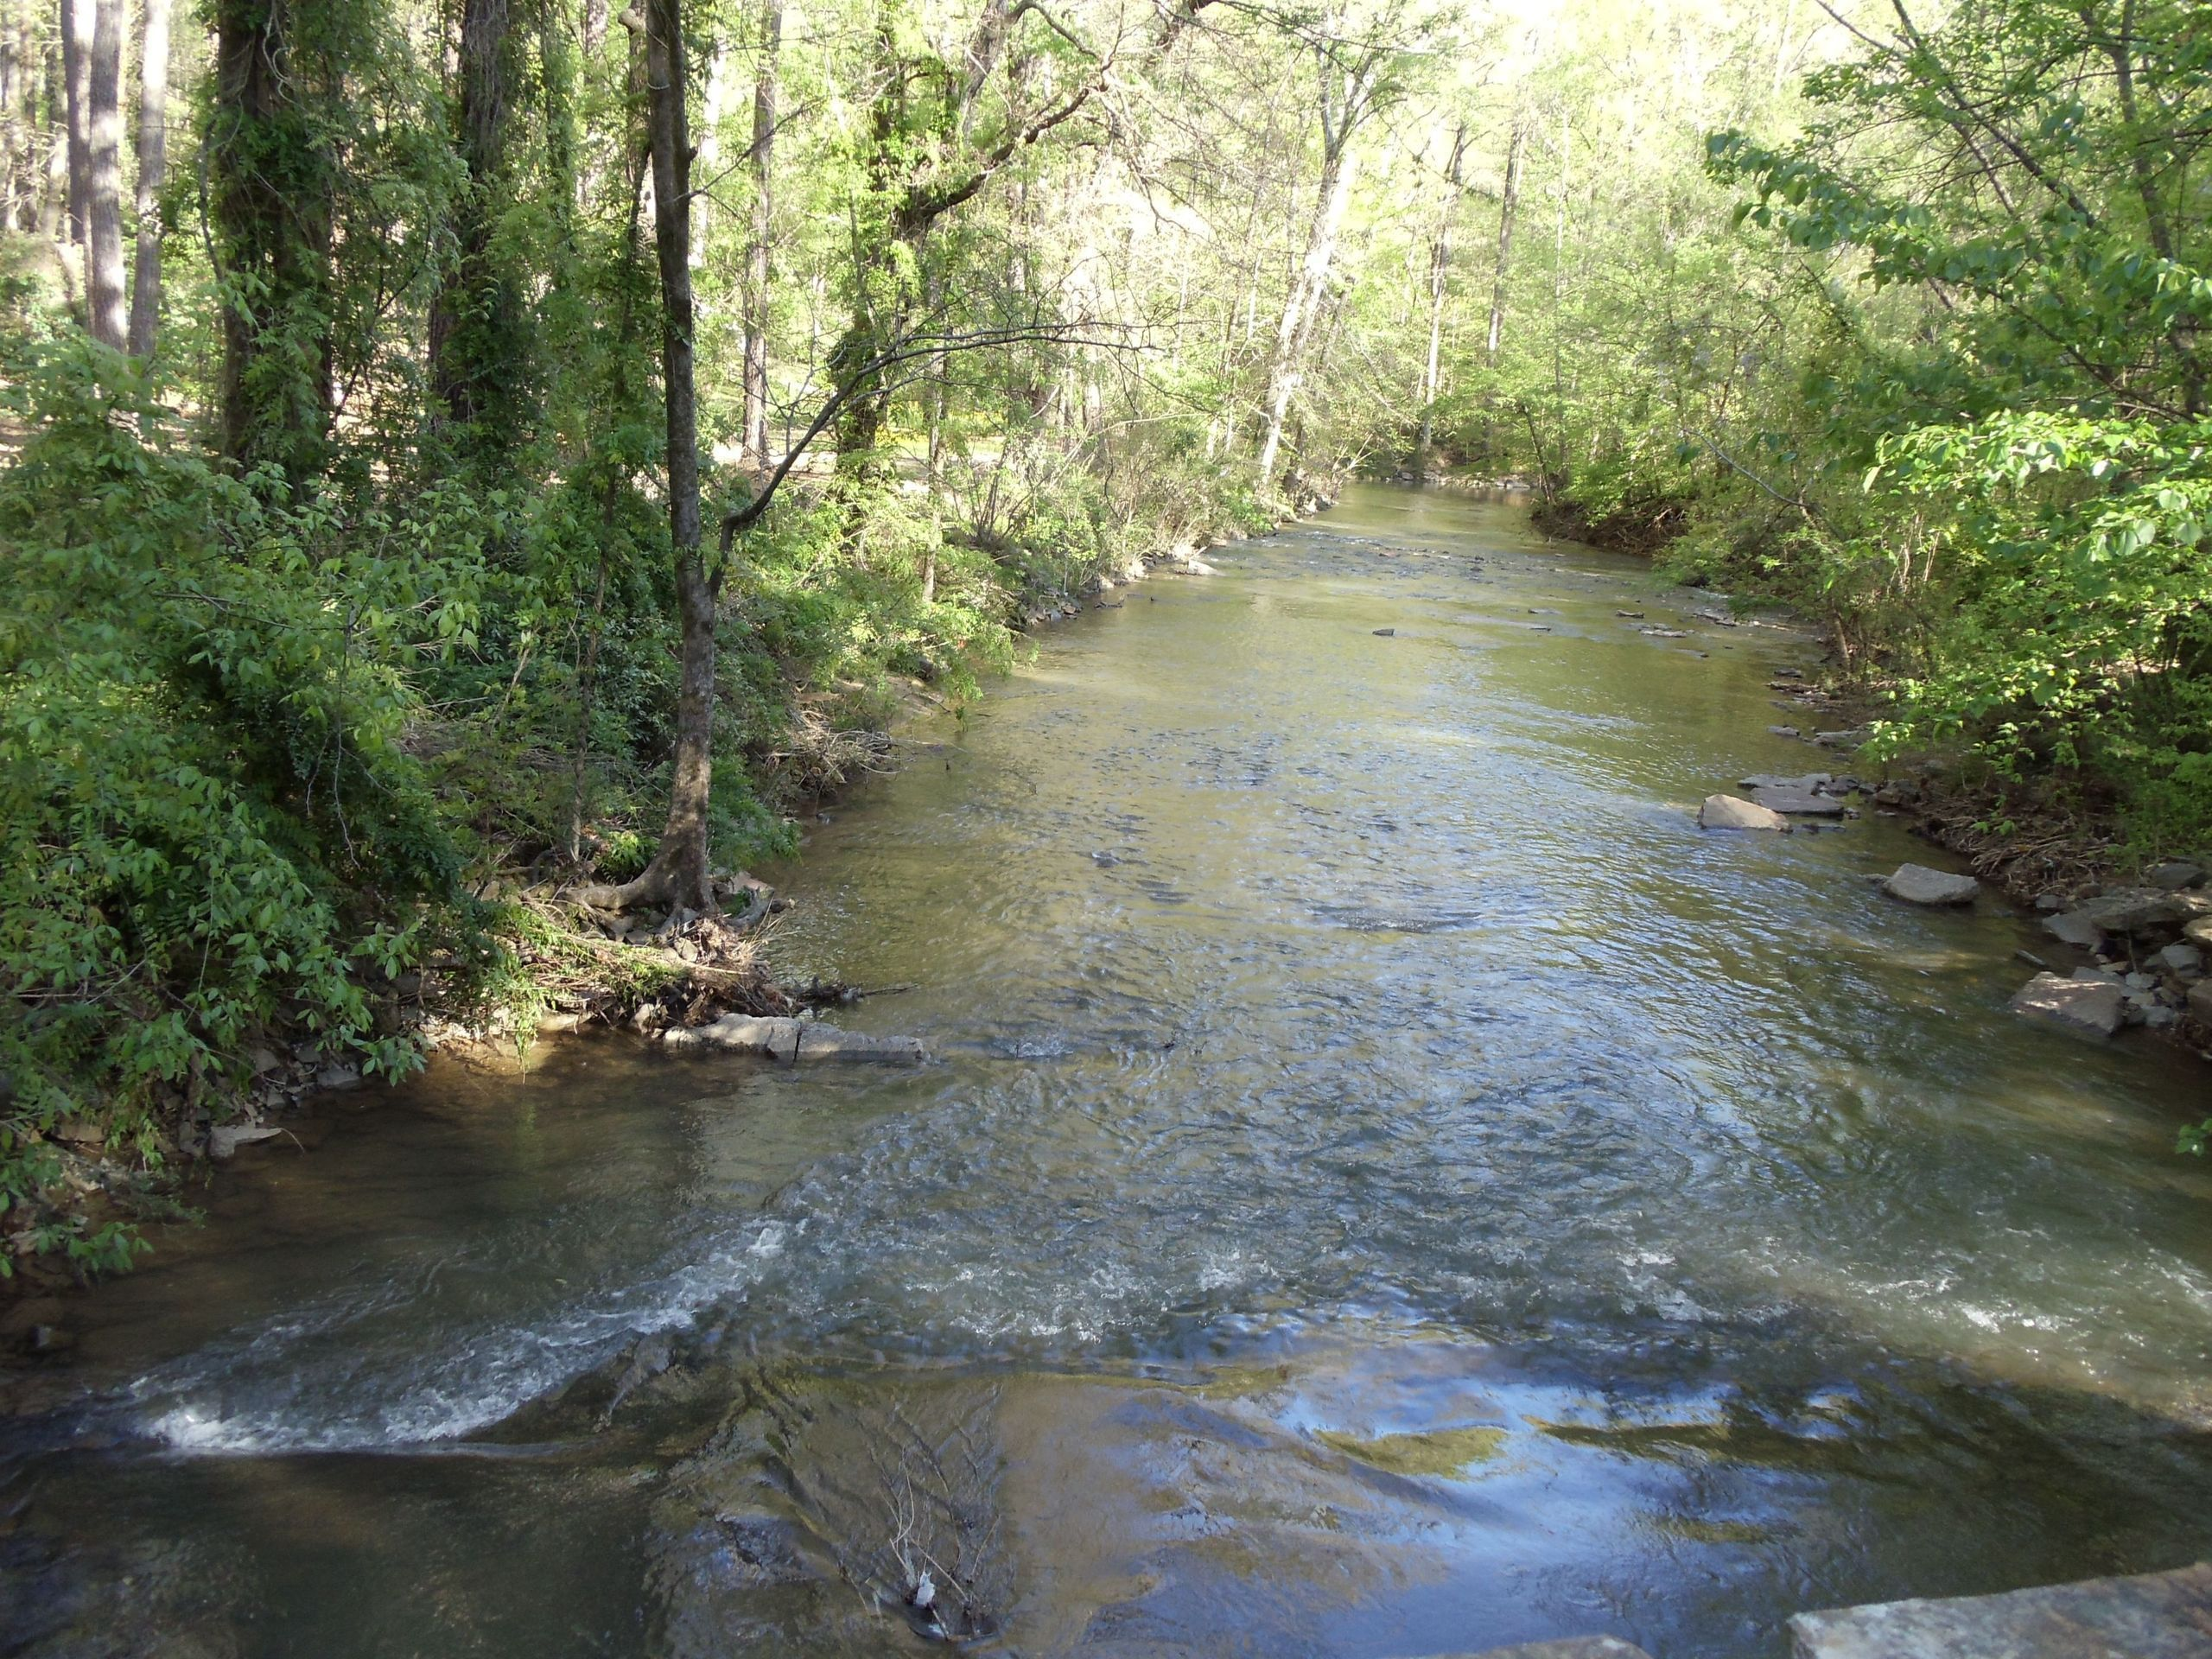 Creek in Jemison Park in Beautiful Mountain Brook, Alabama image